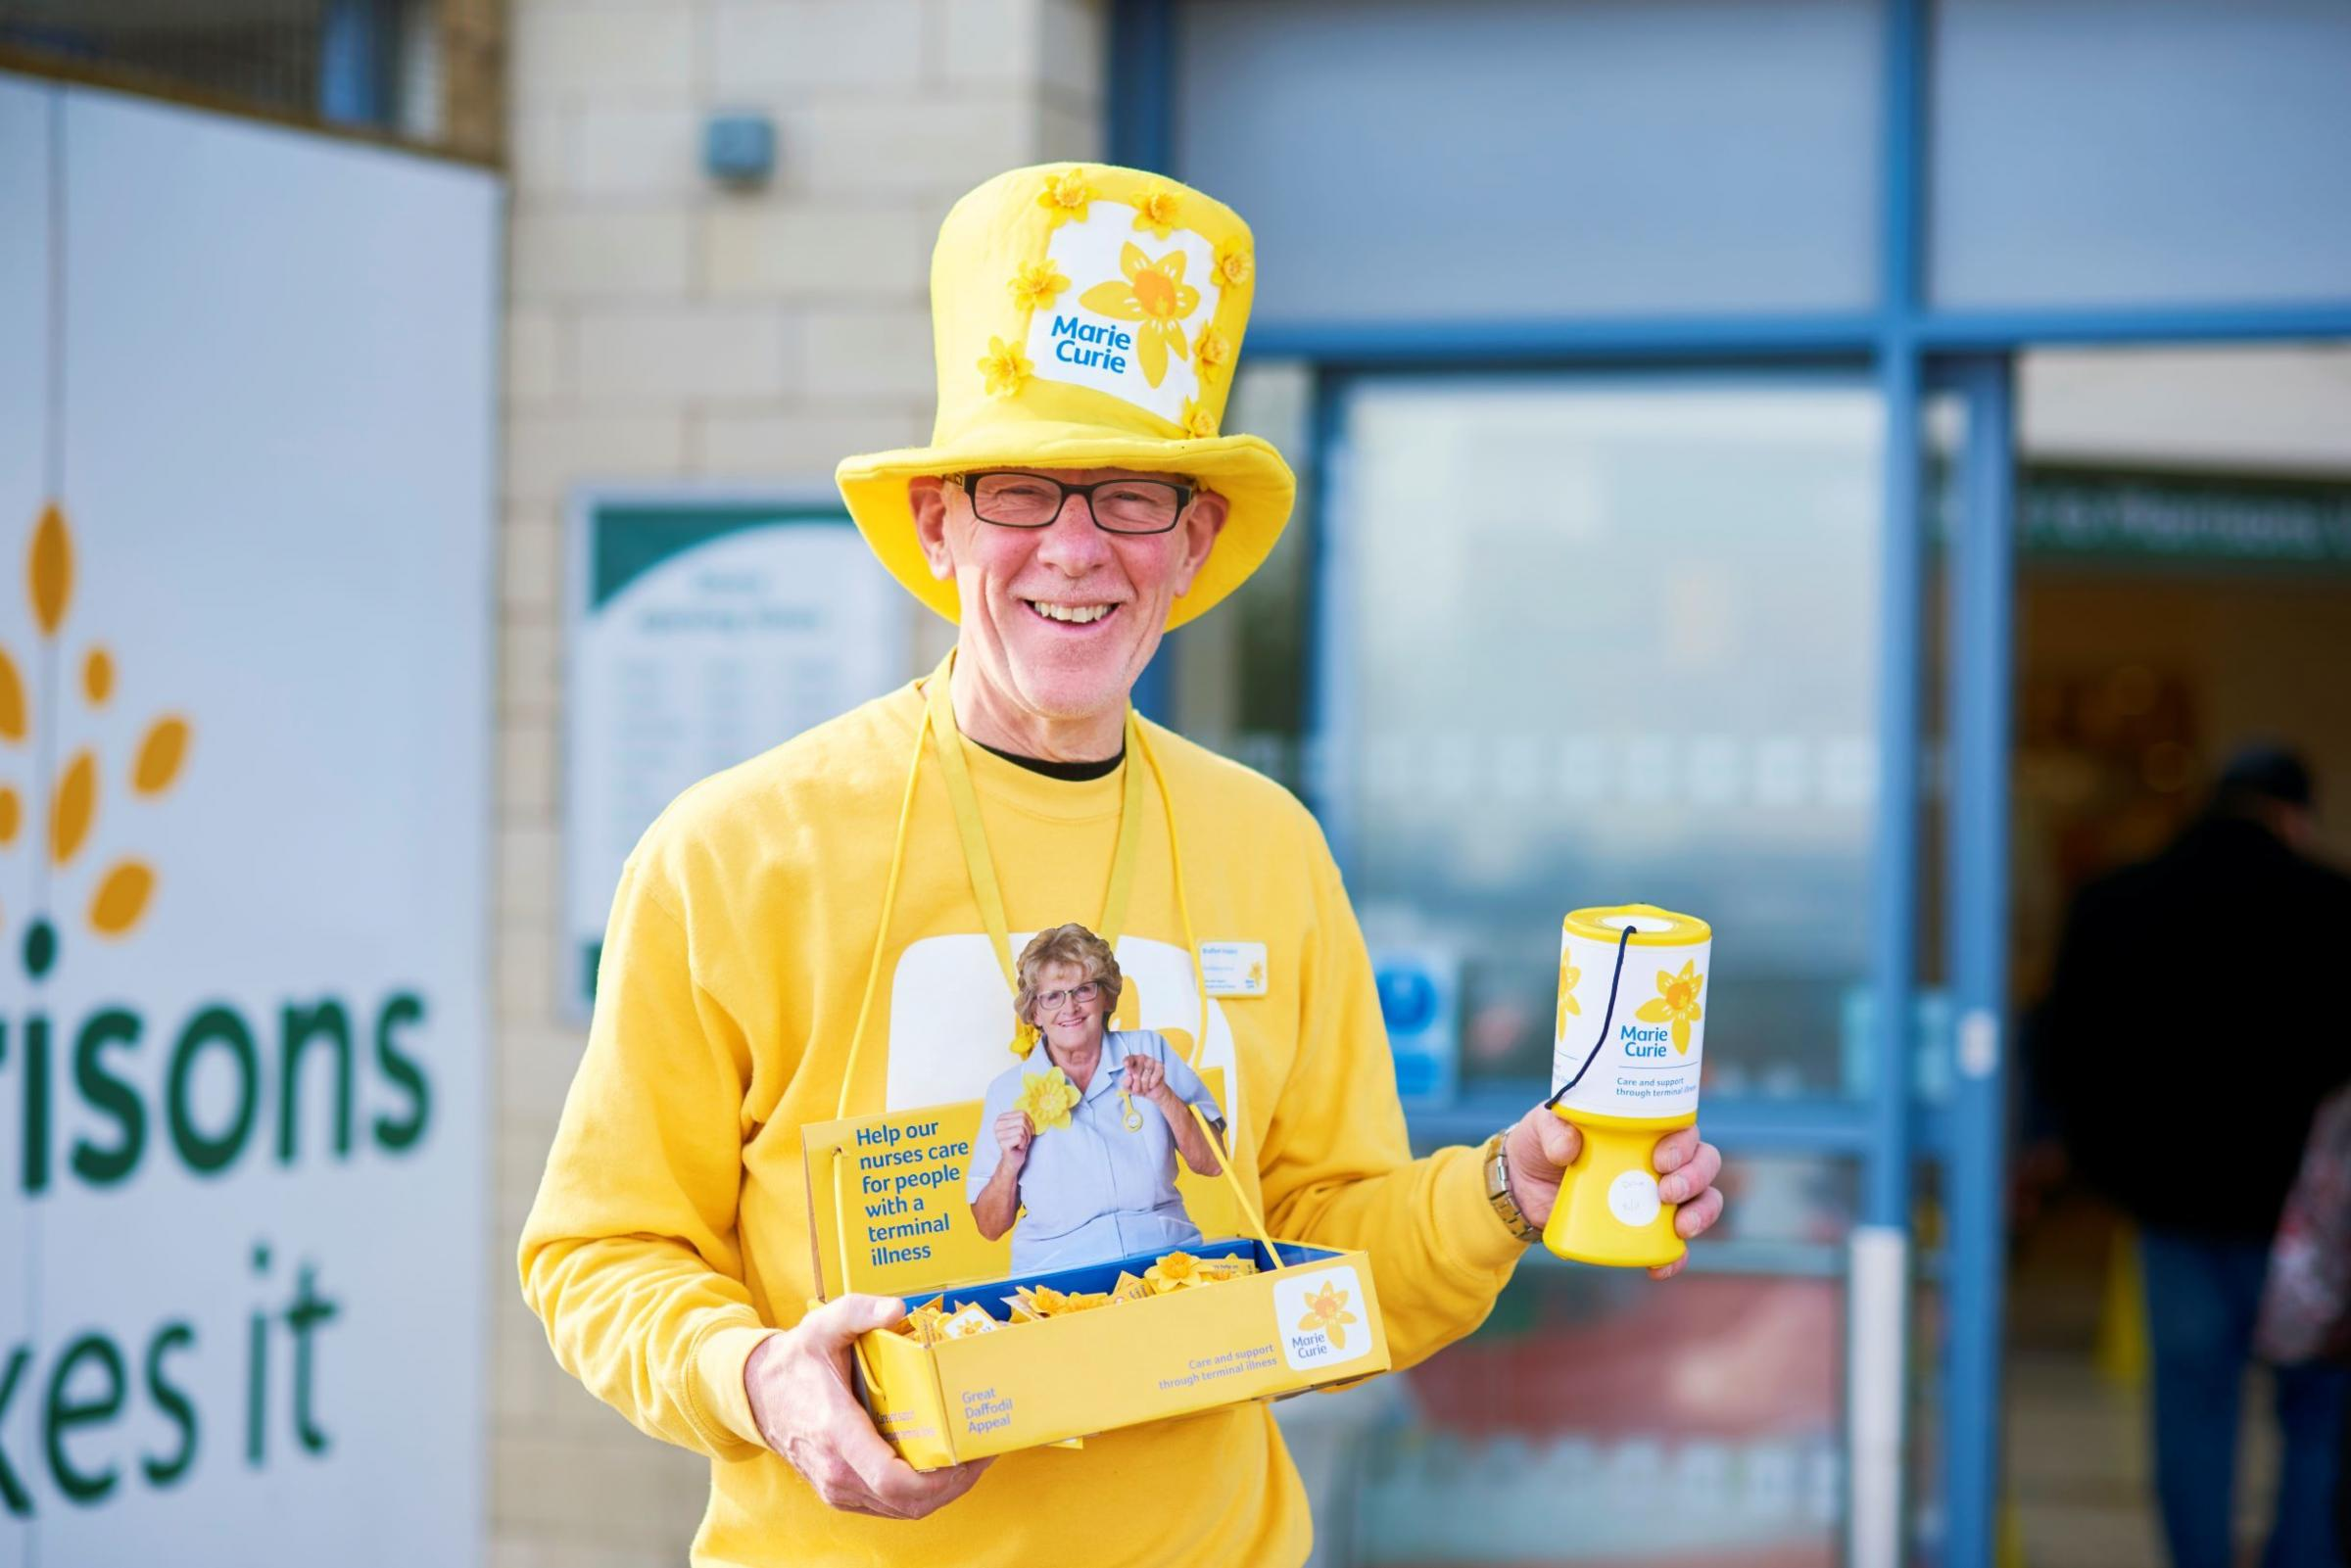 Collections held at Morrisons Winsford and Middlewich stores raised over £2,650